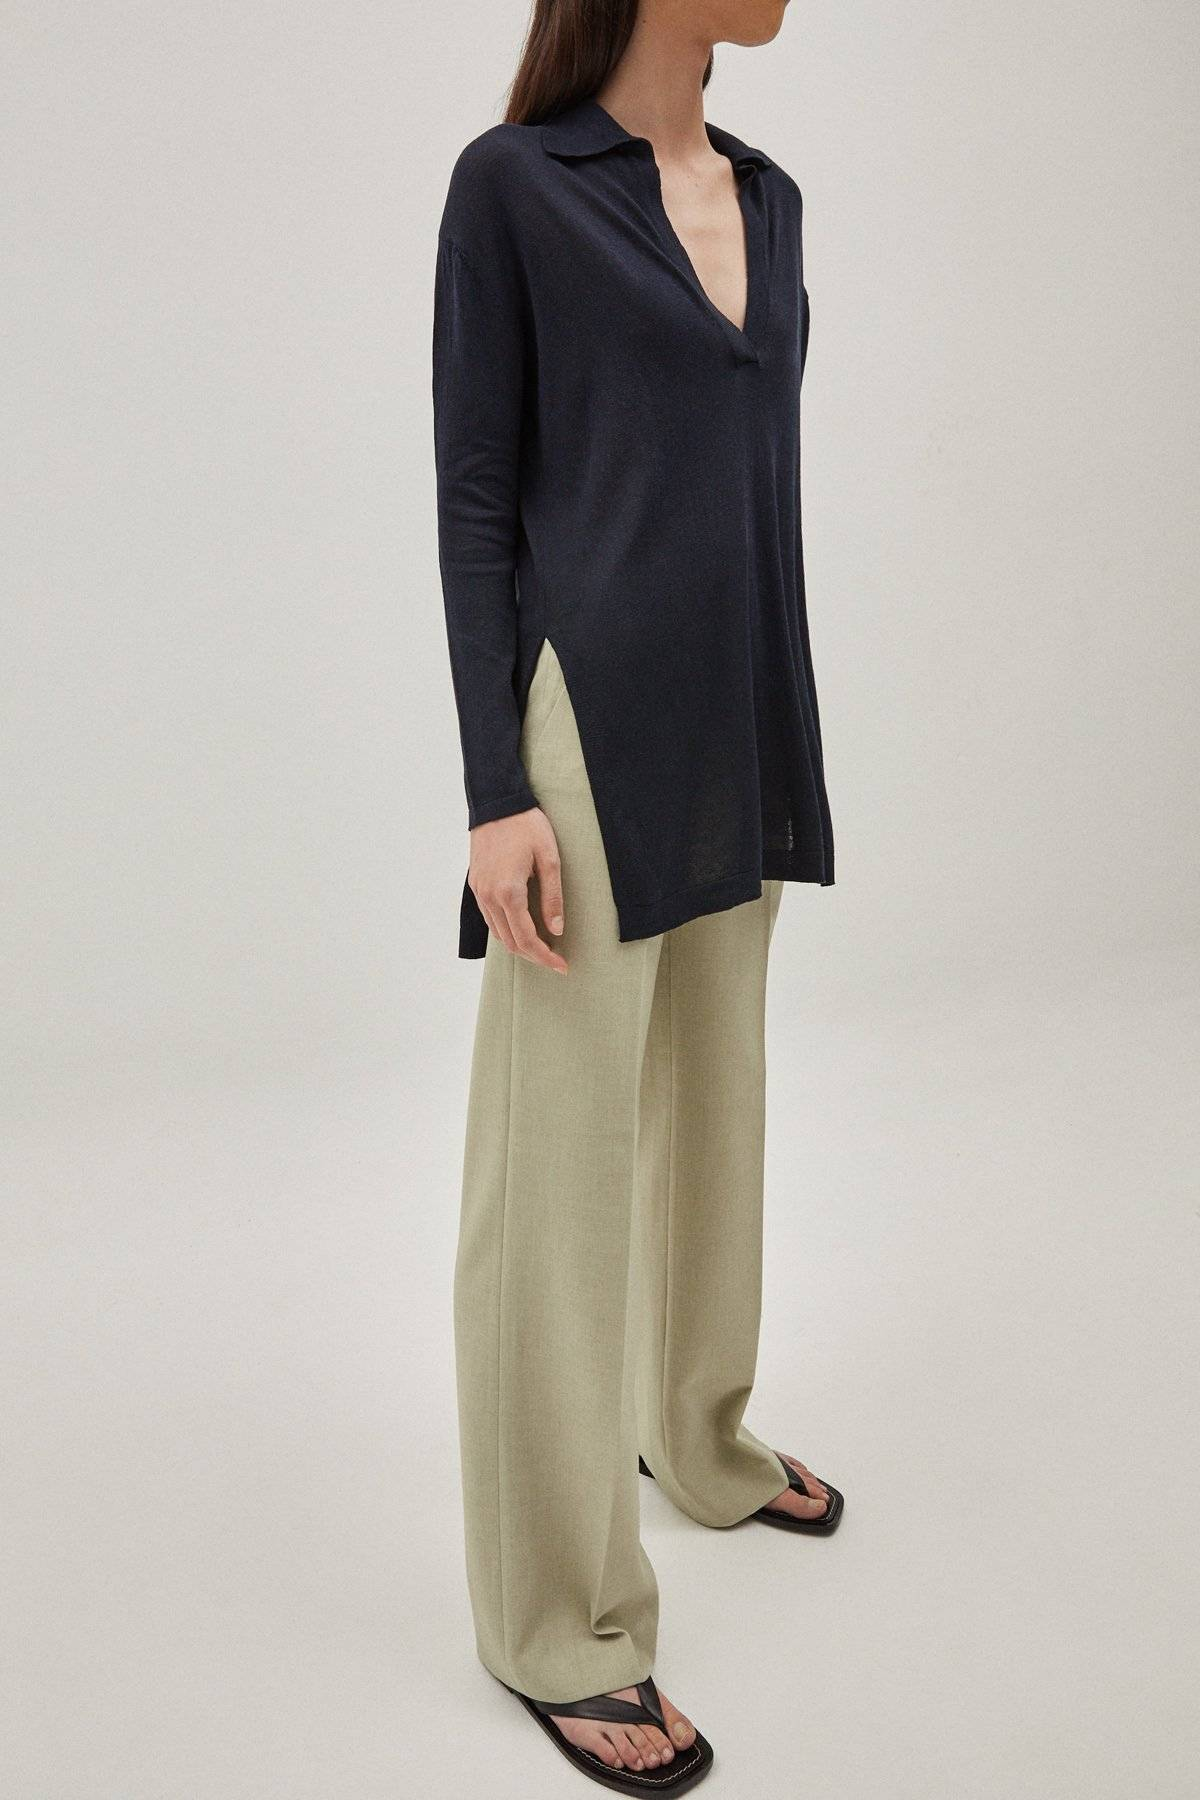 The Silk Cotton Tunic - Blue Navy